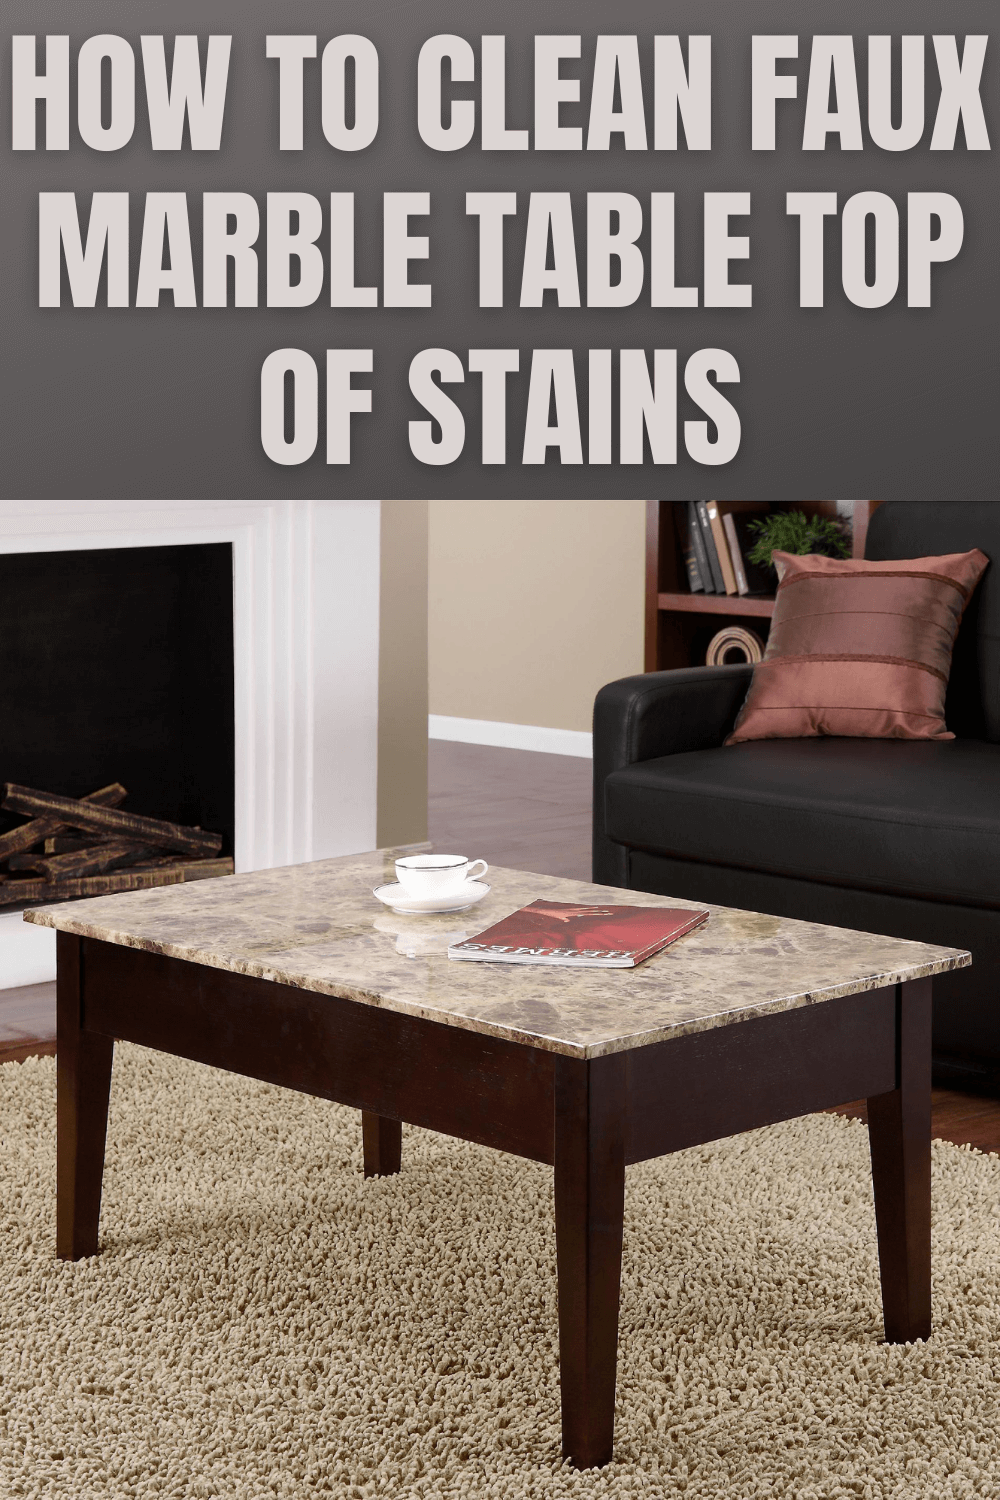 HOW TO CLEAN FAUX MARBLE TABLE TOP OF STAINS